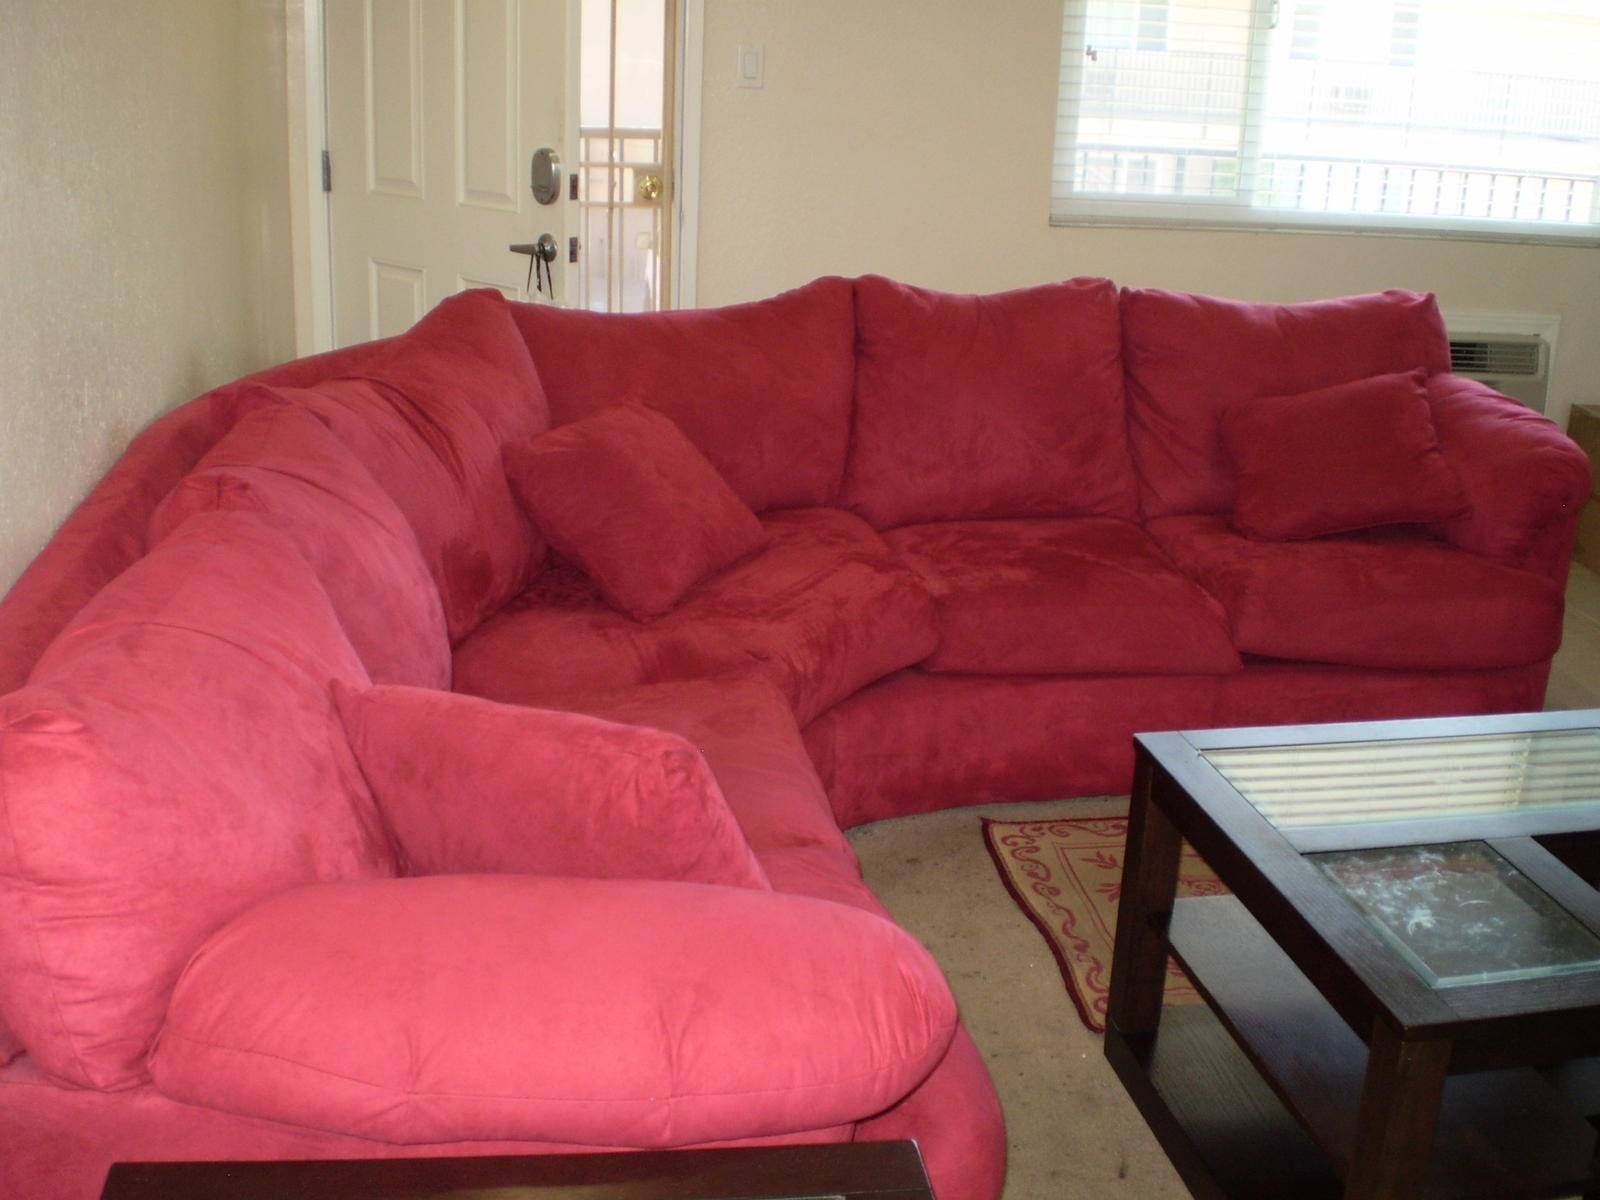 Sectional Sofas Sale Cheap | Tehranmix Decoration in Sofas Cheap Prices (Image 25 of 30)